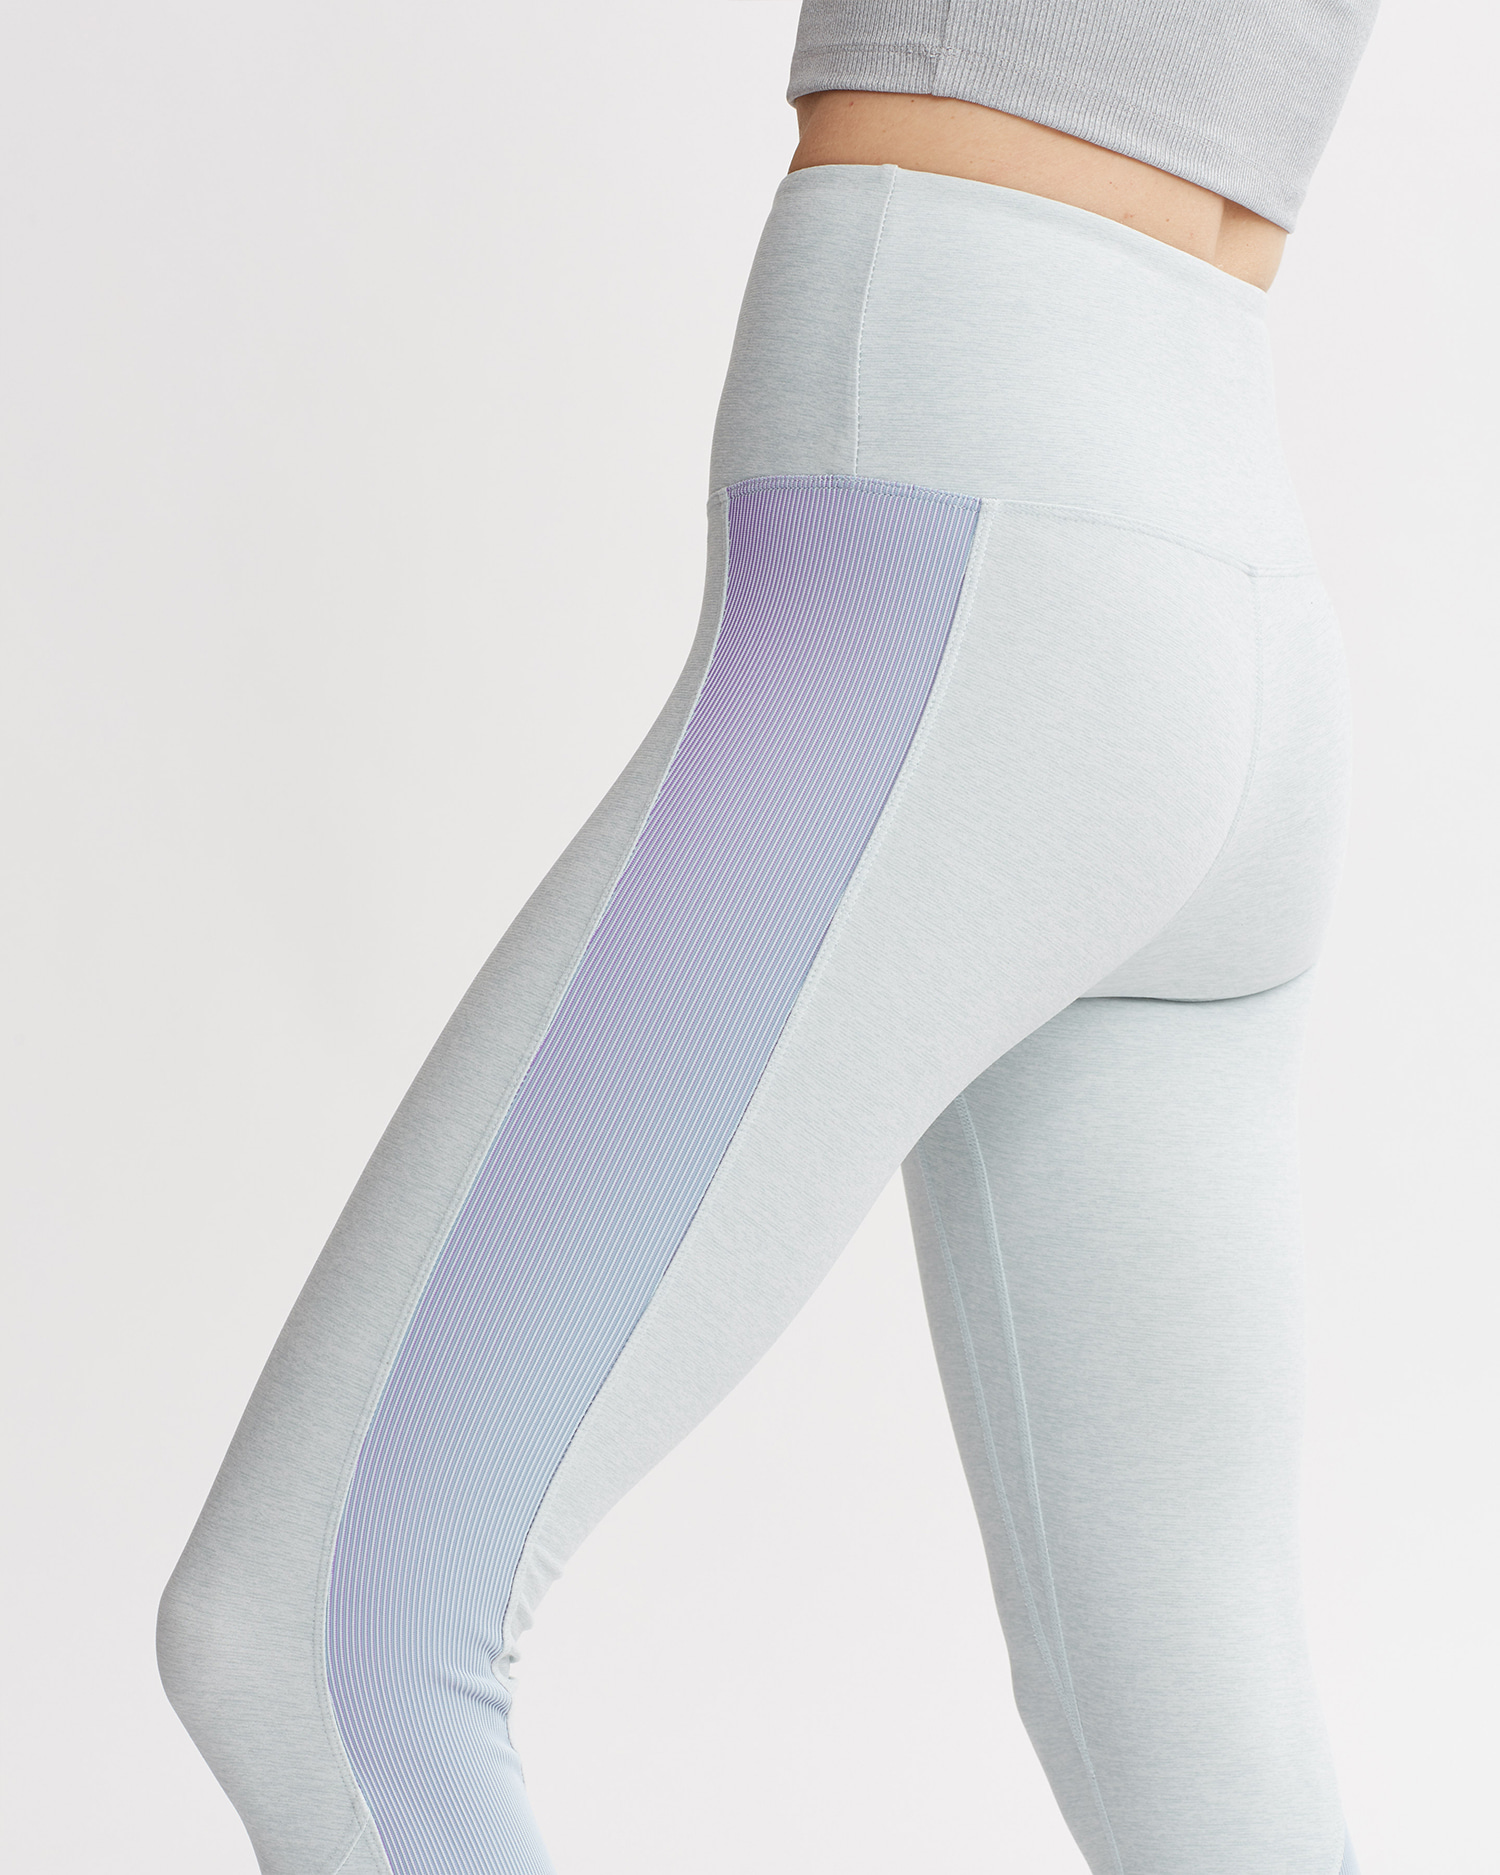 LEVEE LEGGINGS MINT & IRIDESCENT PALE BLUE